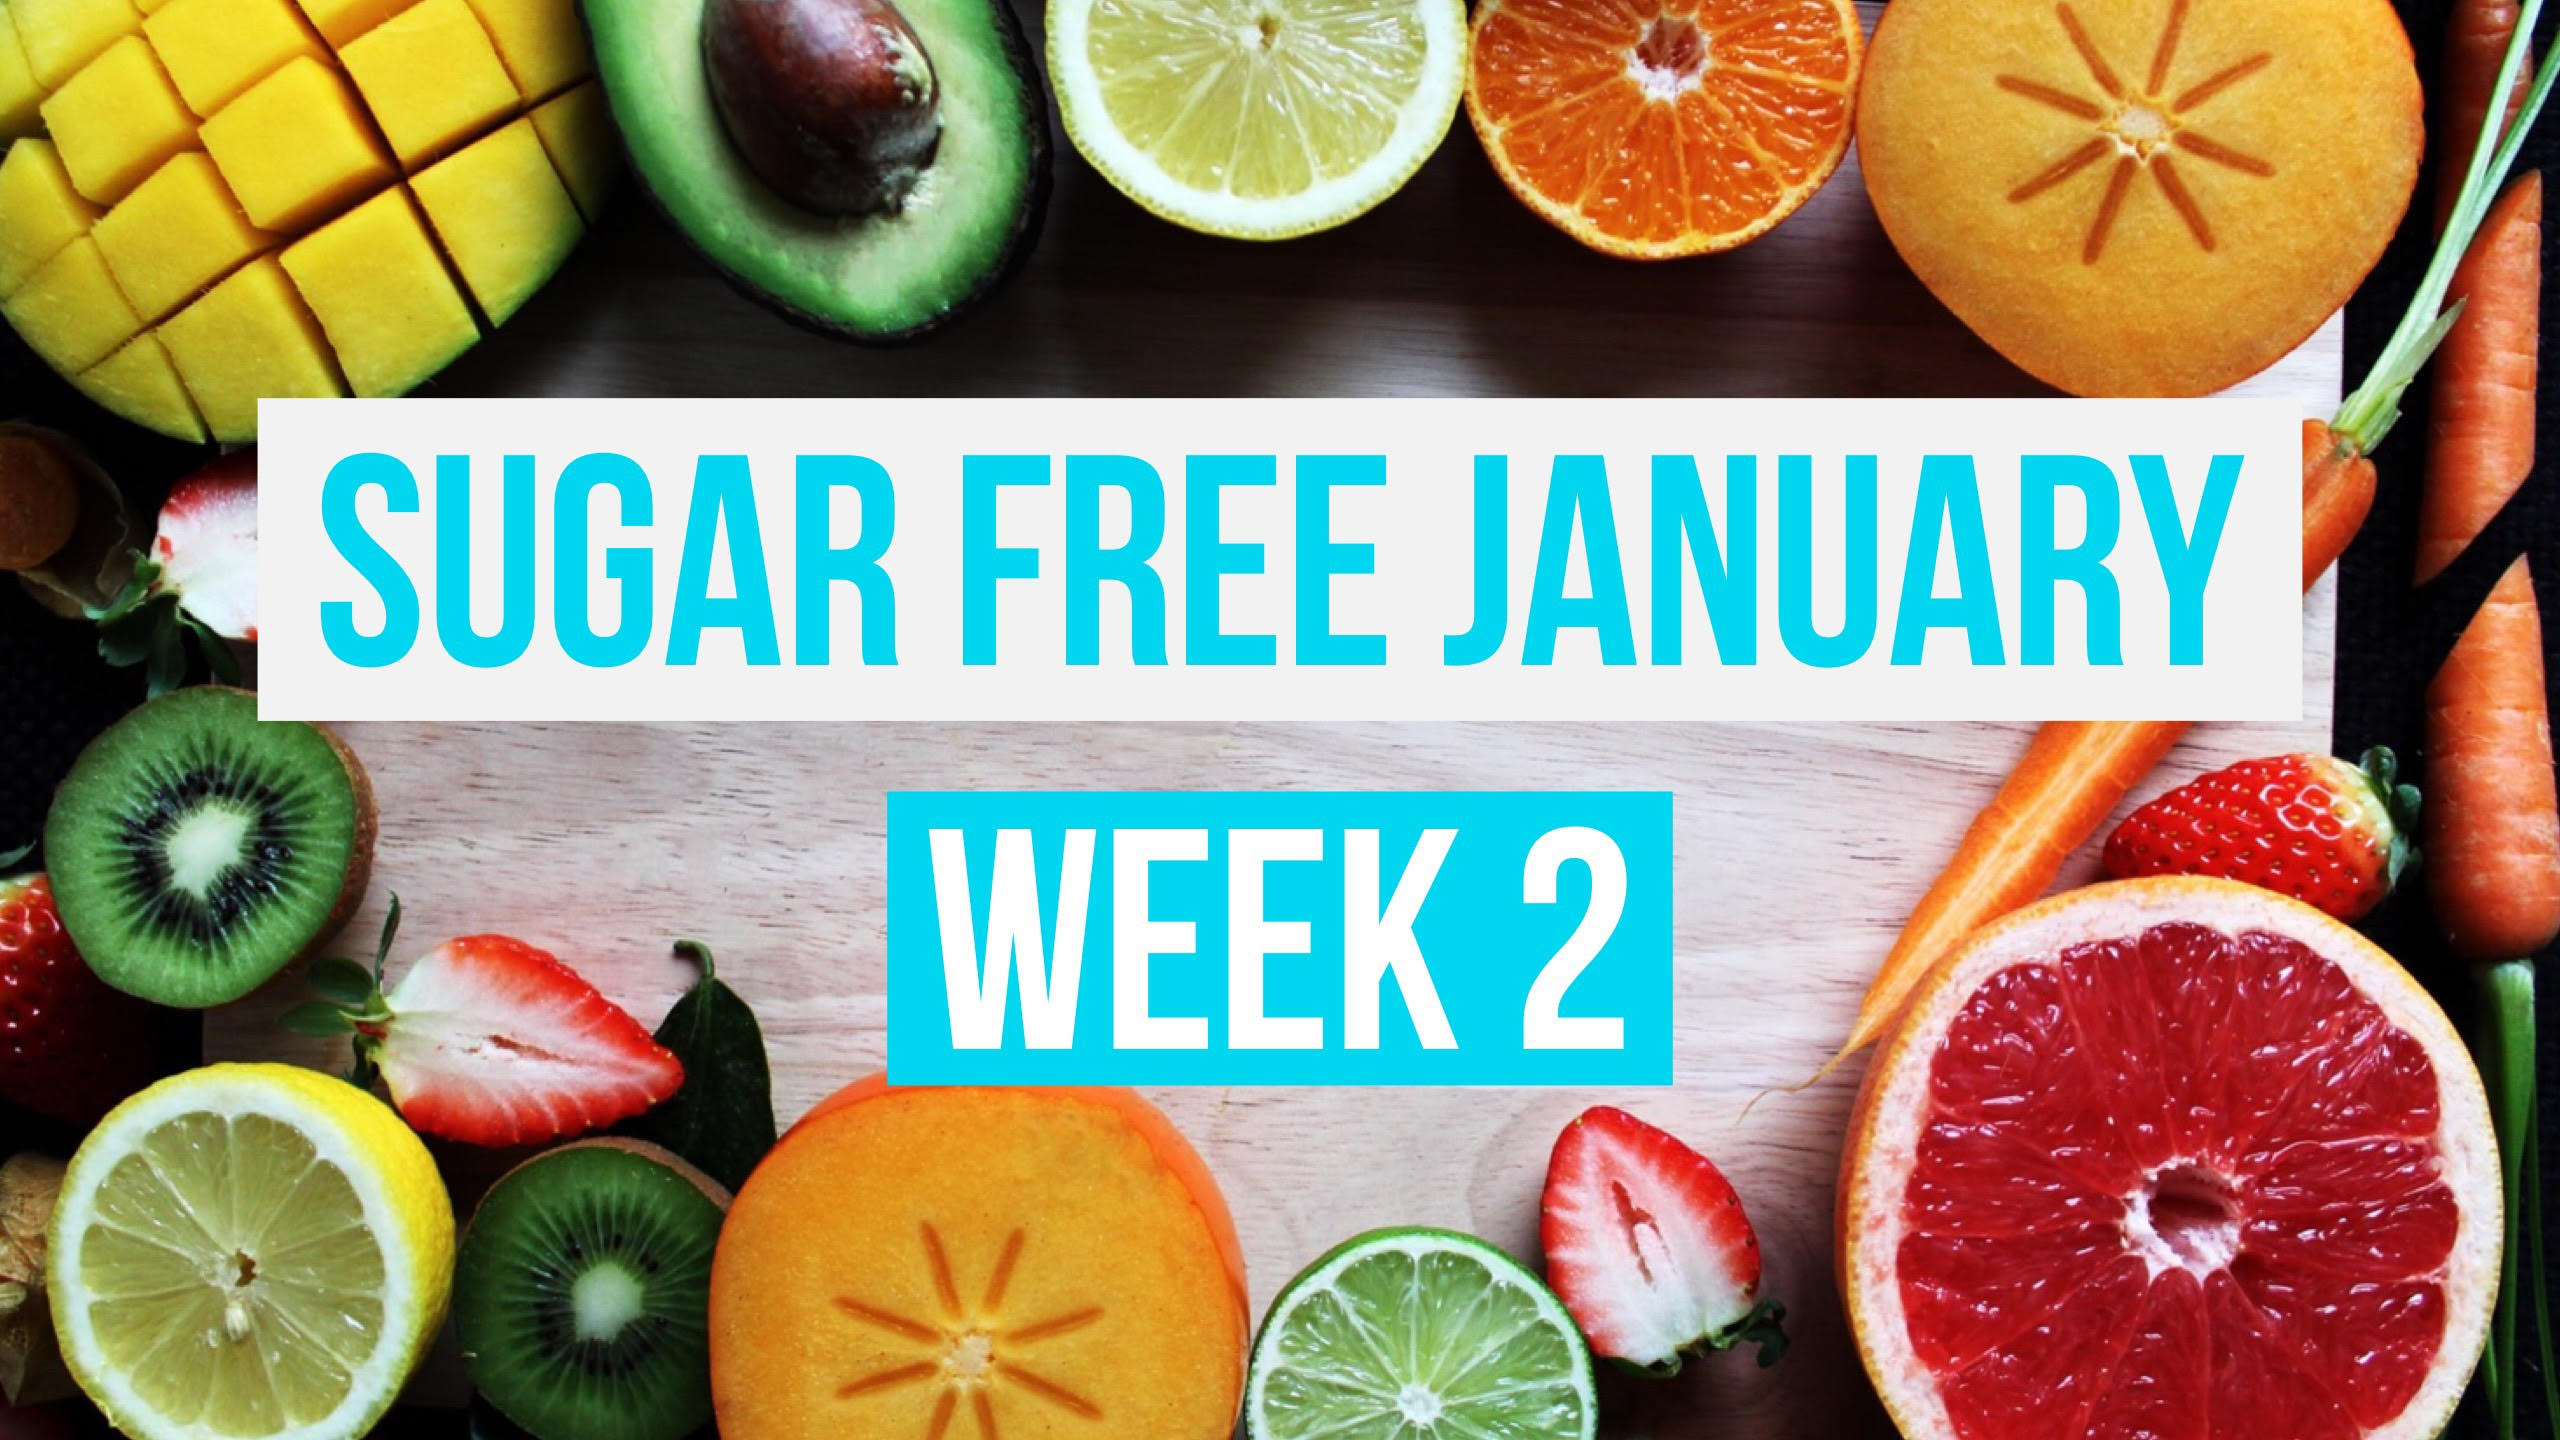 Sugar Free January Week 2